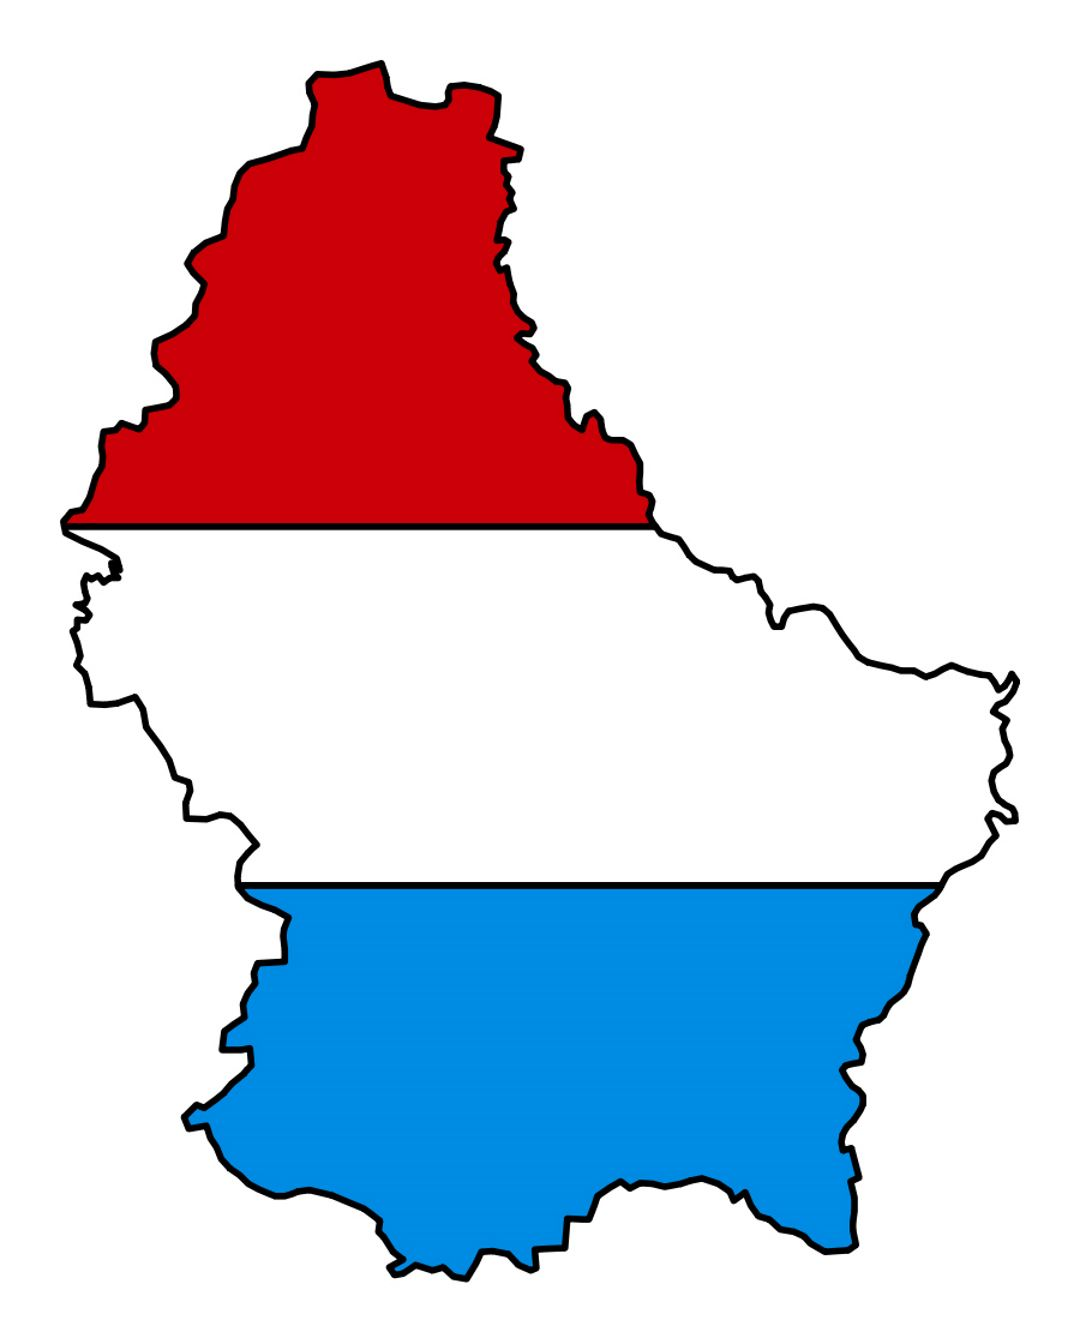 Detailed flag map of Luxembourg